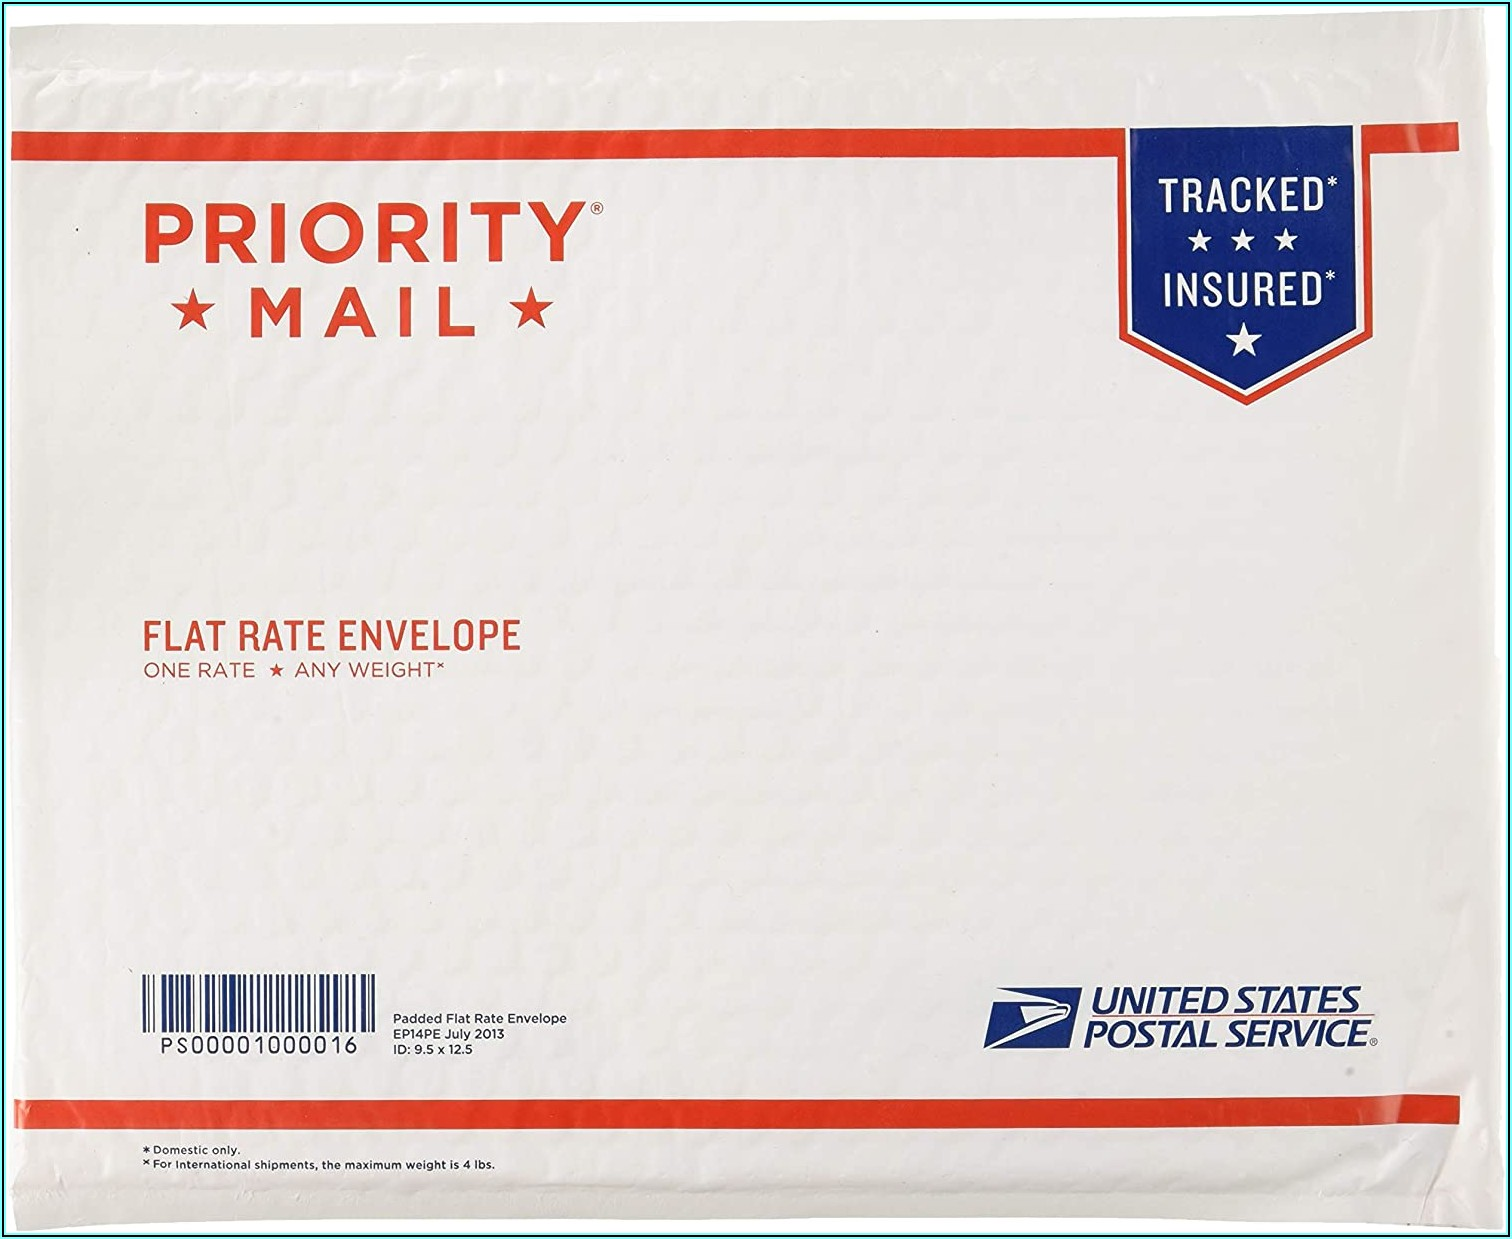 Post Office Priority Mail Envelope Price